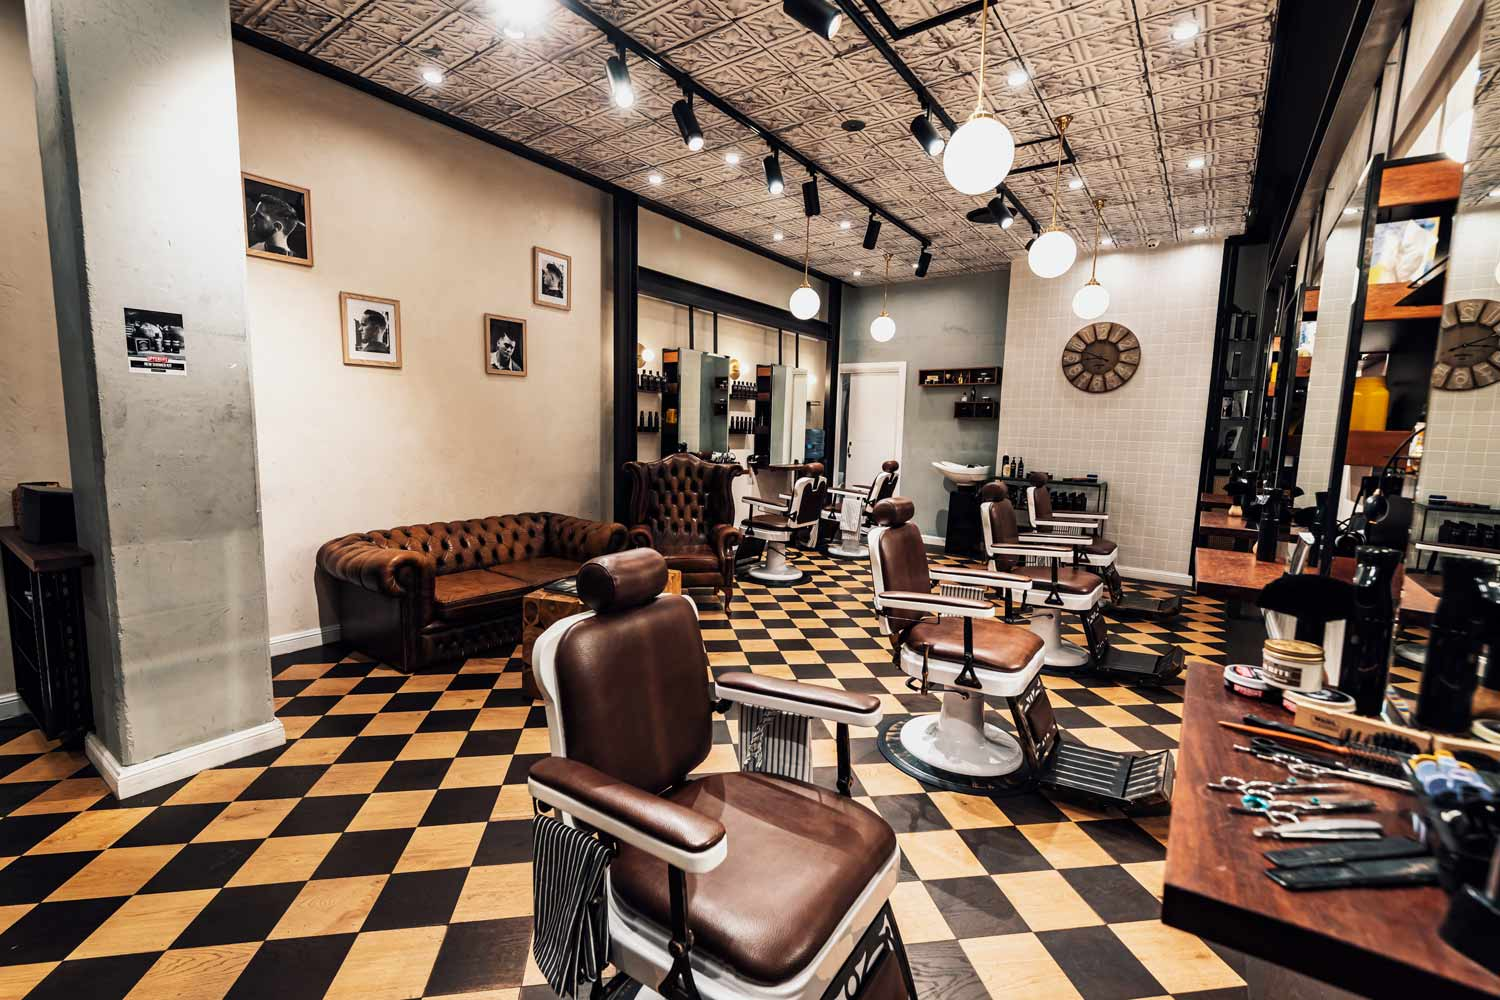 Barber Industries - Traditional Barbershop Interior